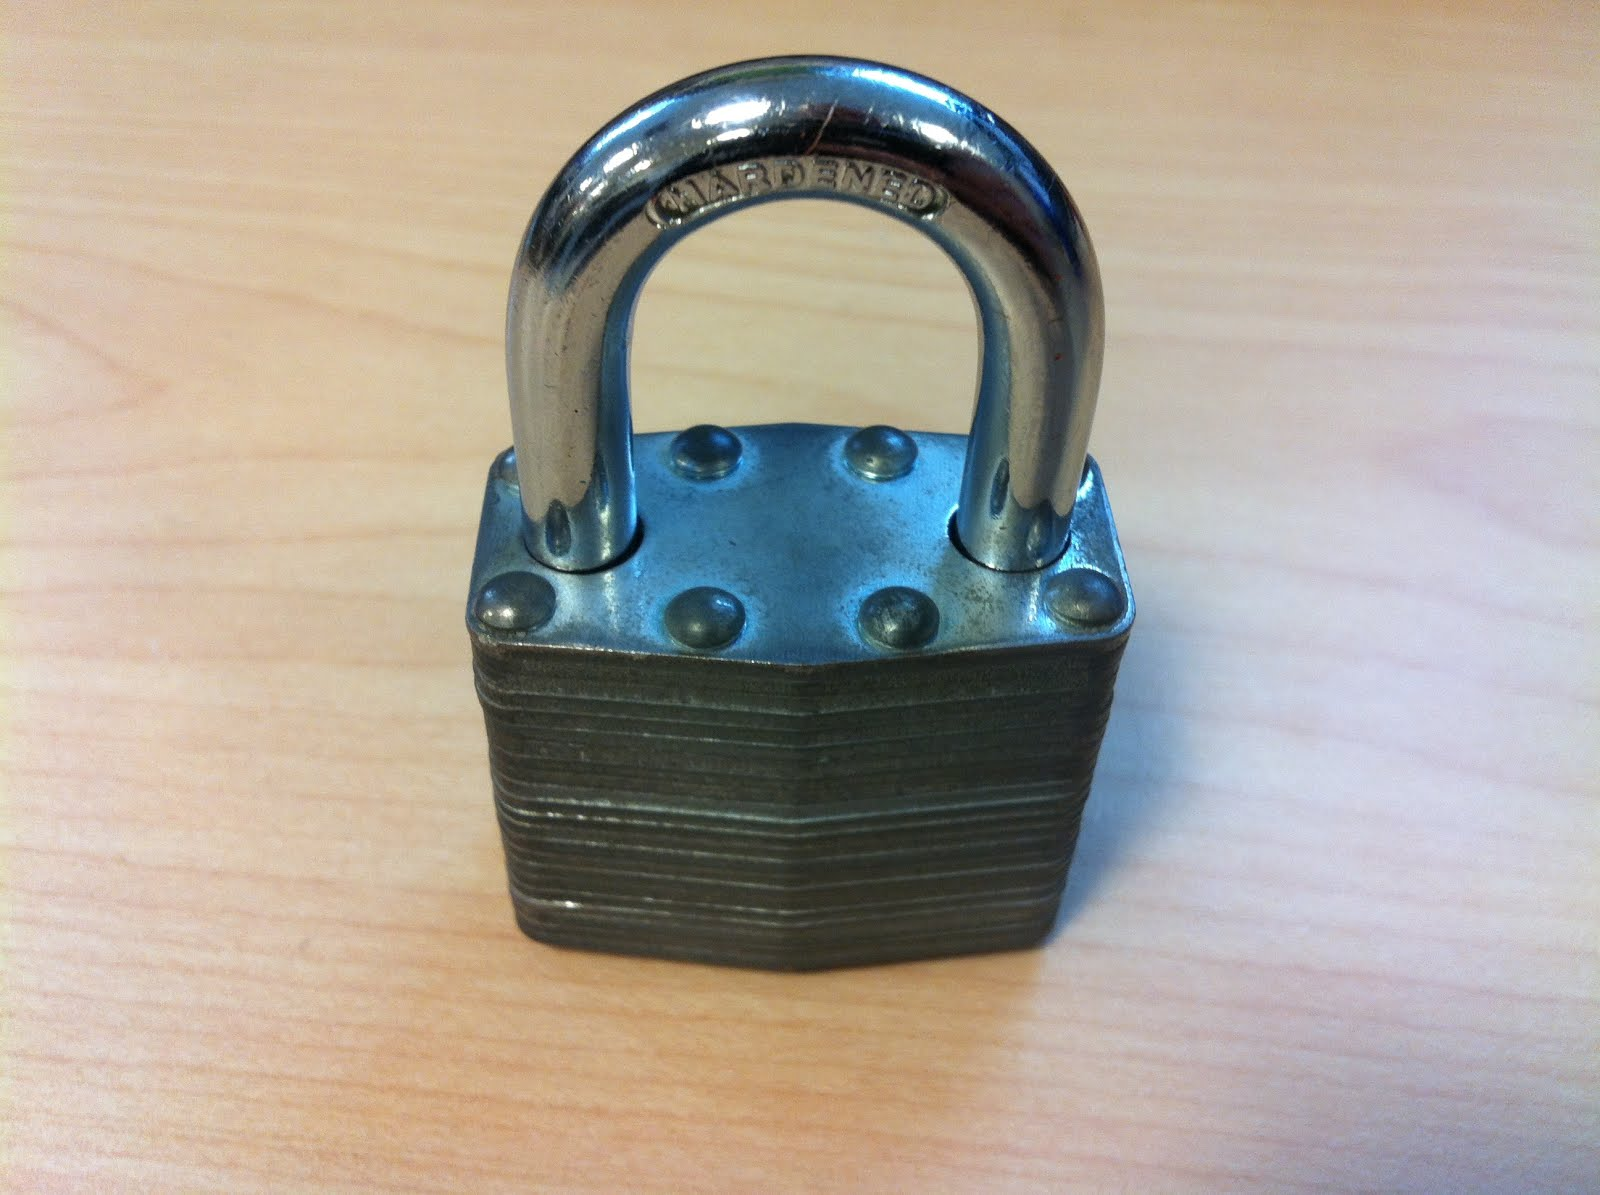 Open Security Research Getting Started With Lock Picking